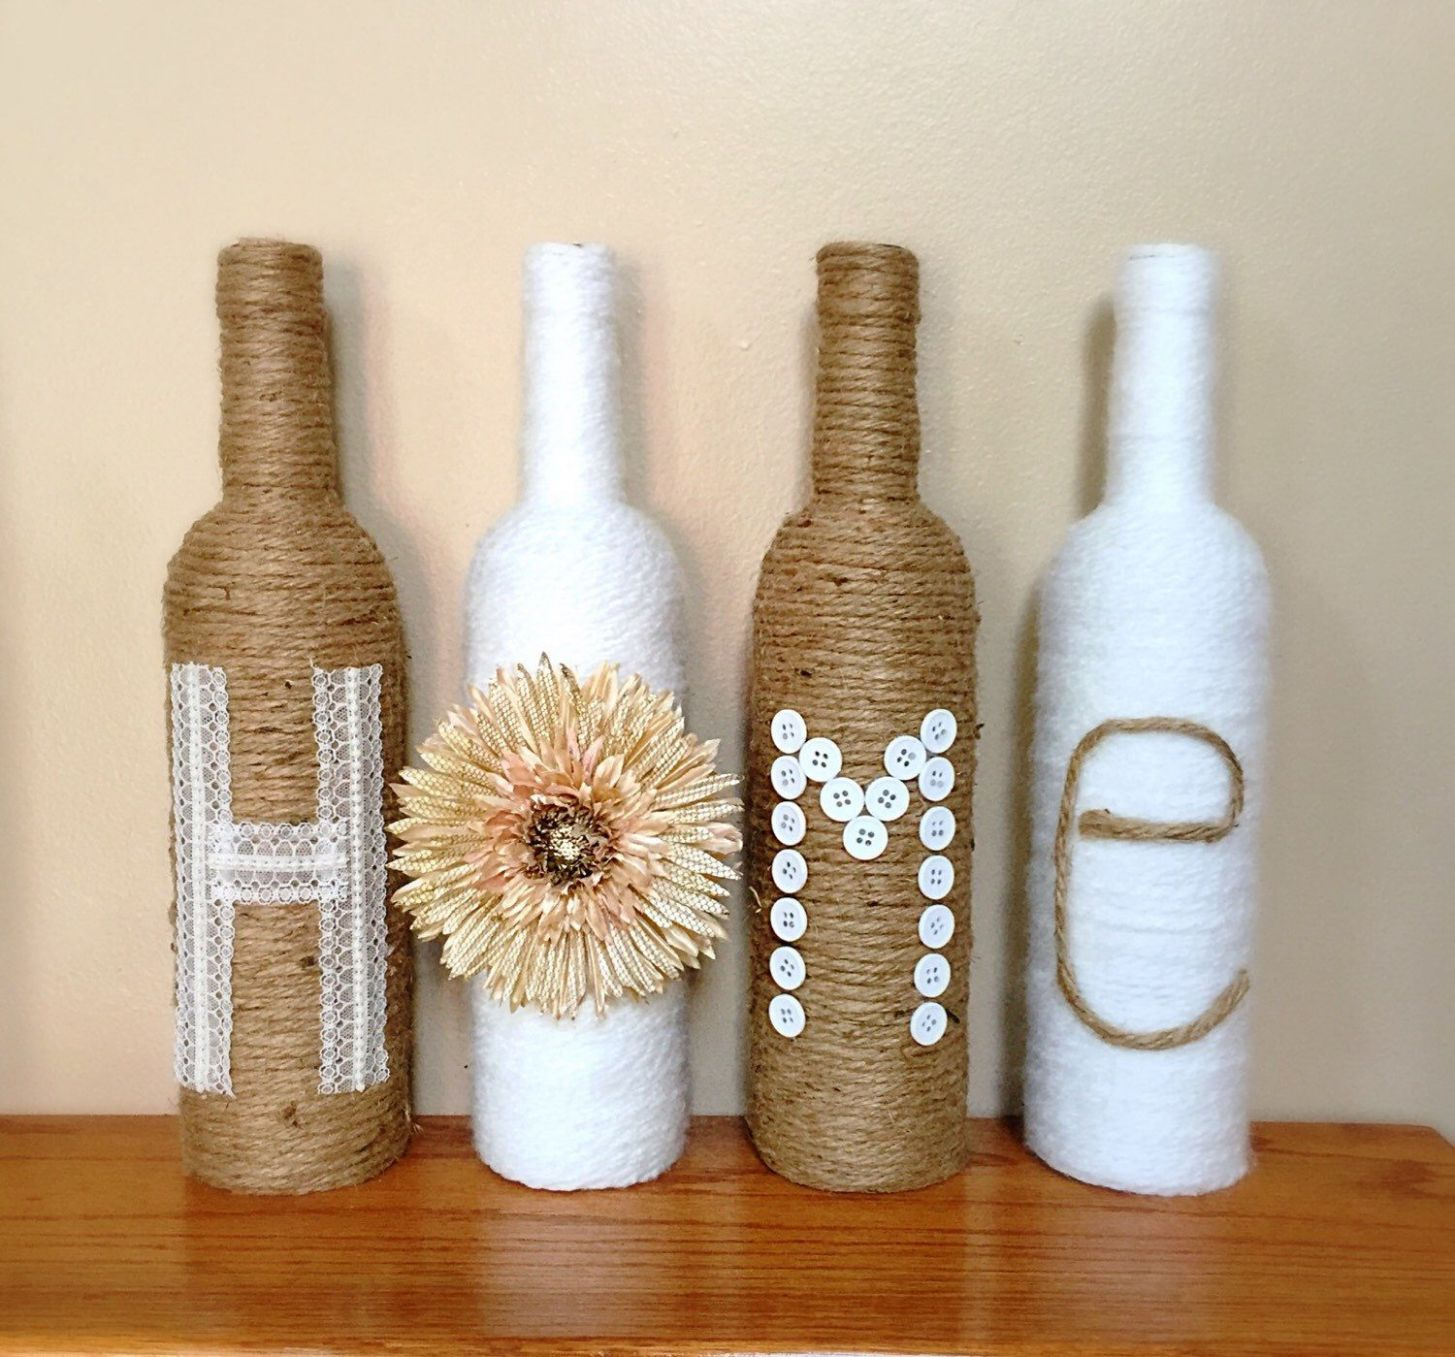 Twine Wrapped Wine Bottles, Rustic Home Decor, Decorated Wine ..